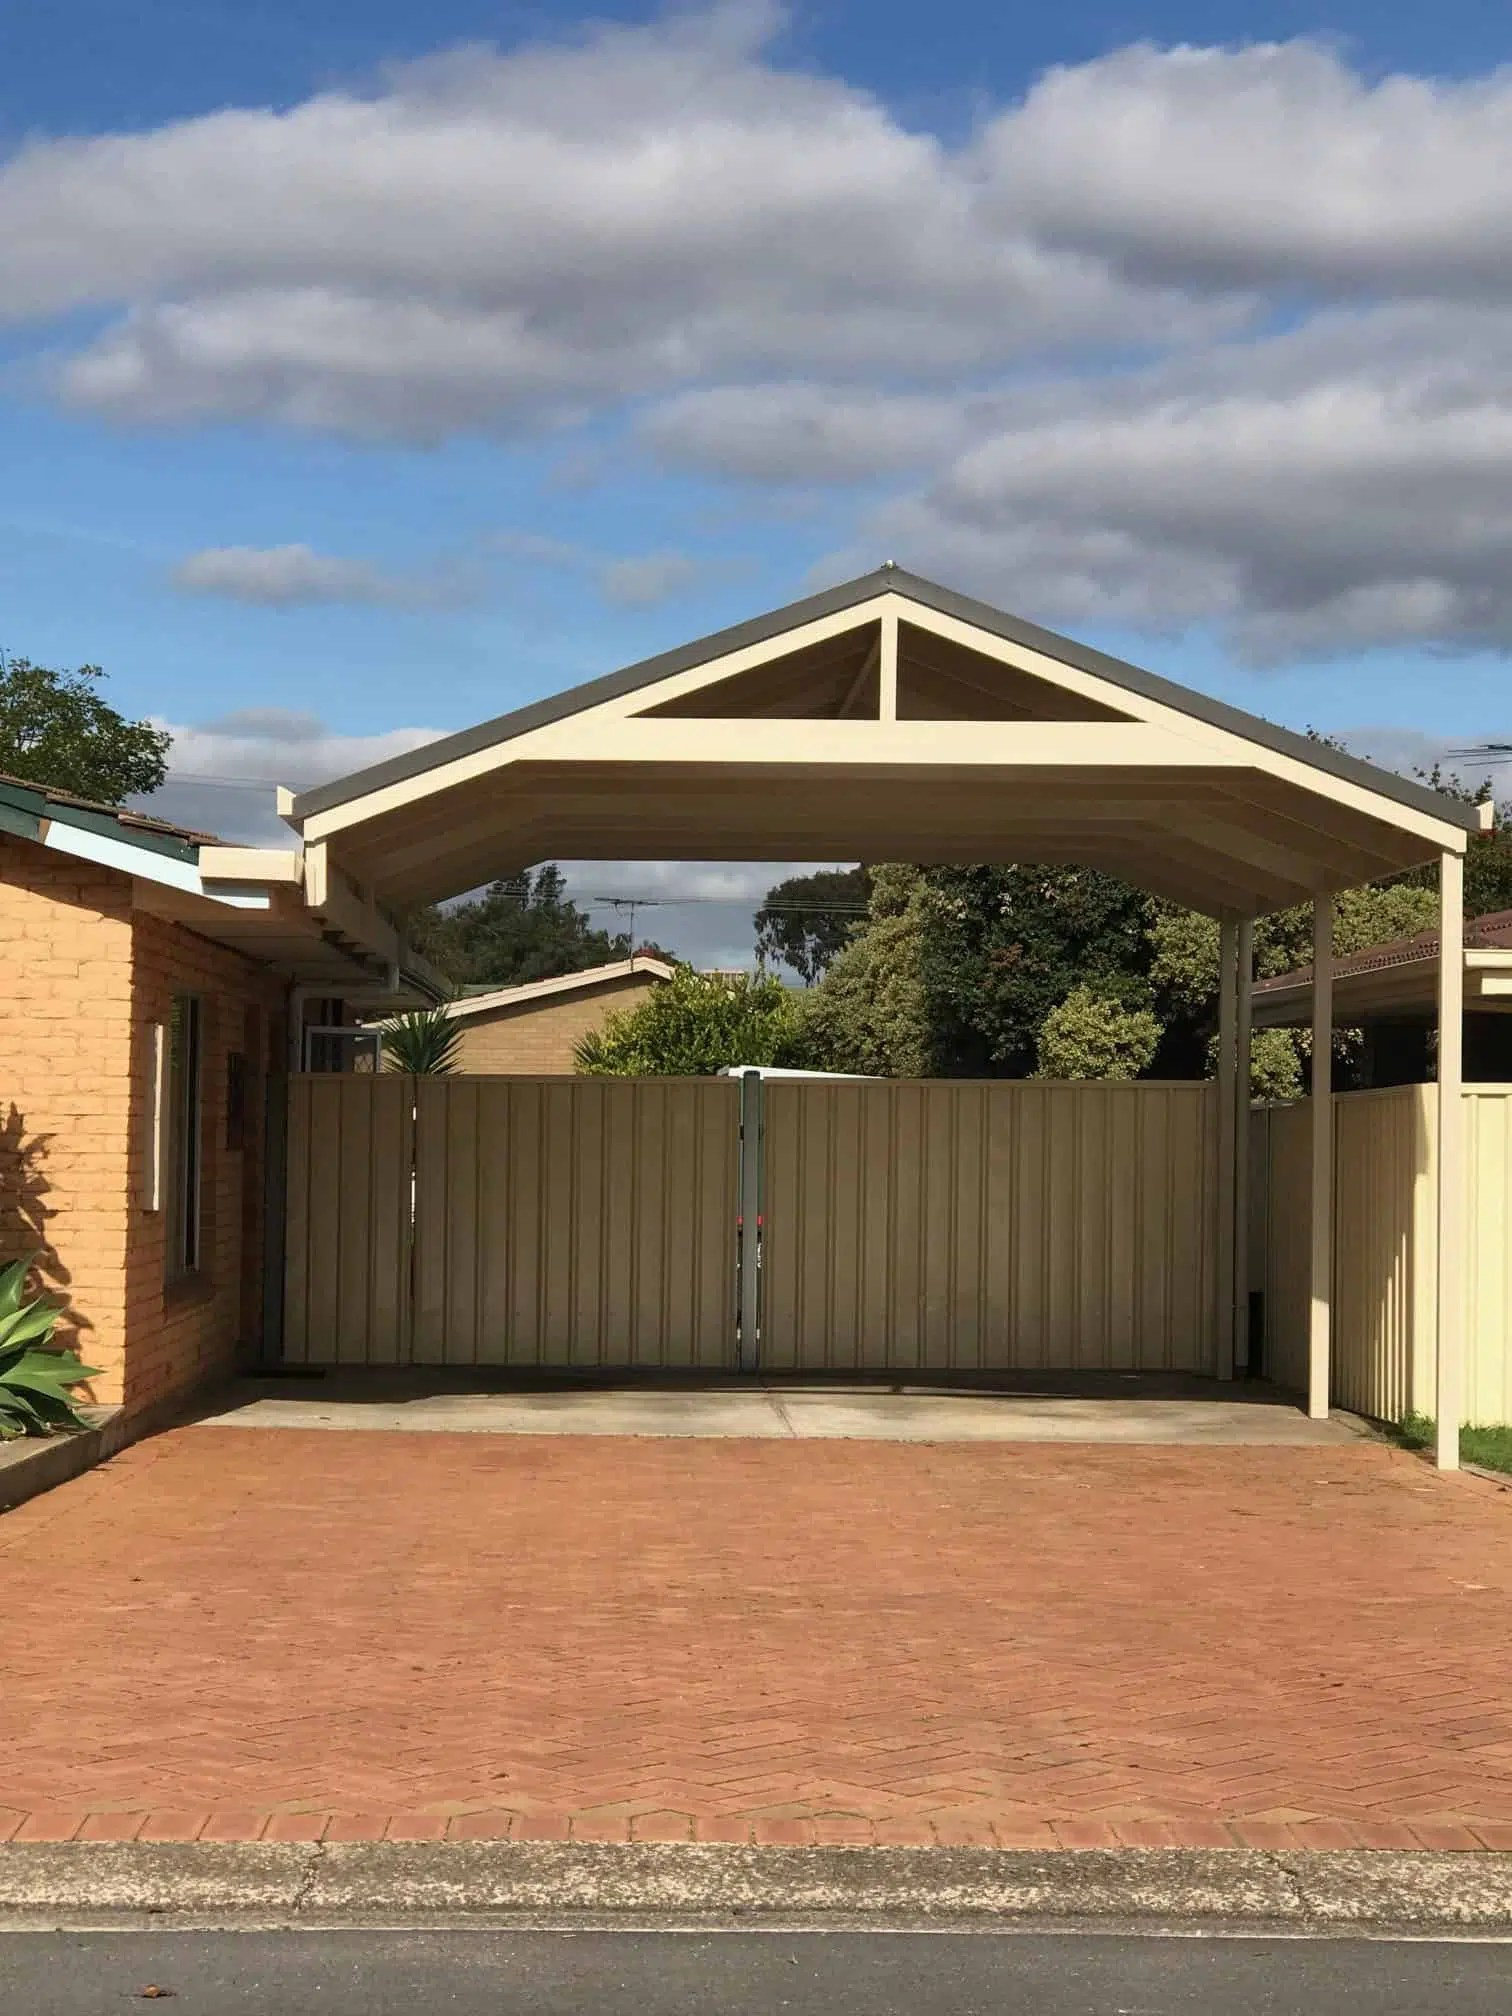 Carports | MyLiving Outdoors on Myliving Outdoors  id=26232